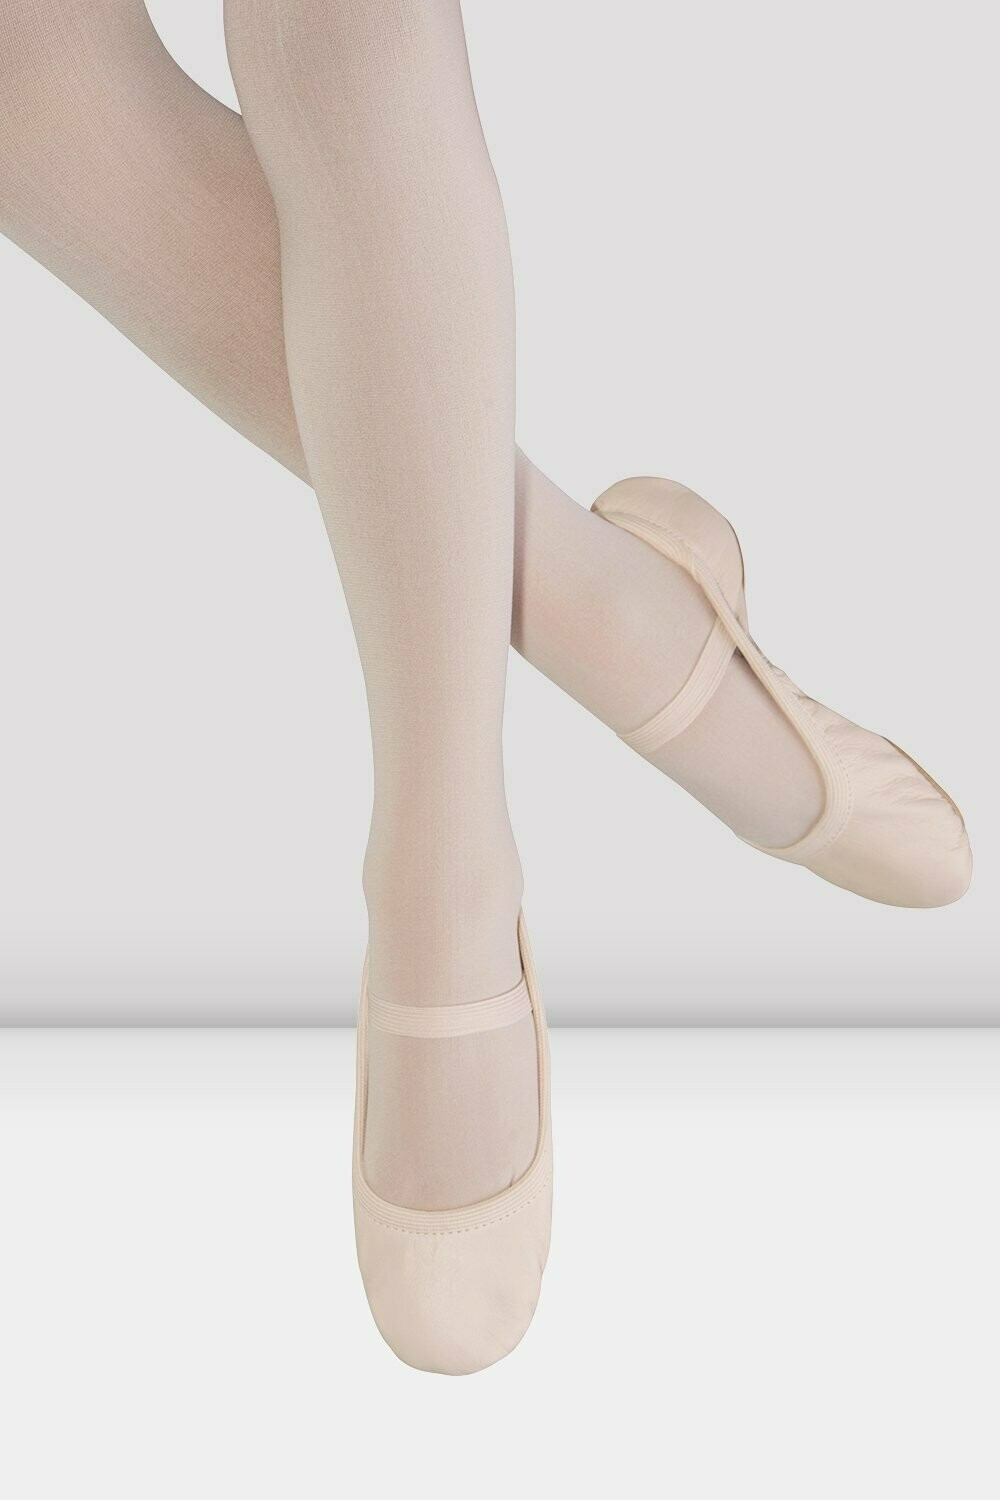 BL S0249L GISELLE LEATHER FULL SOLE BALLET SHOE